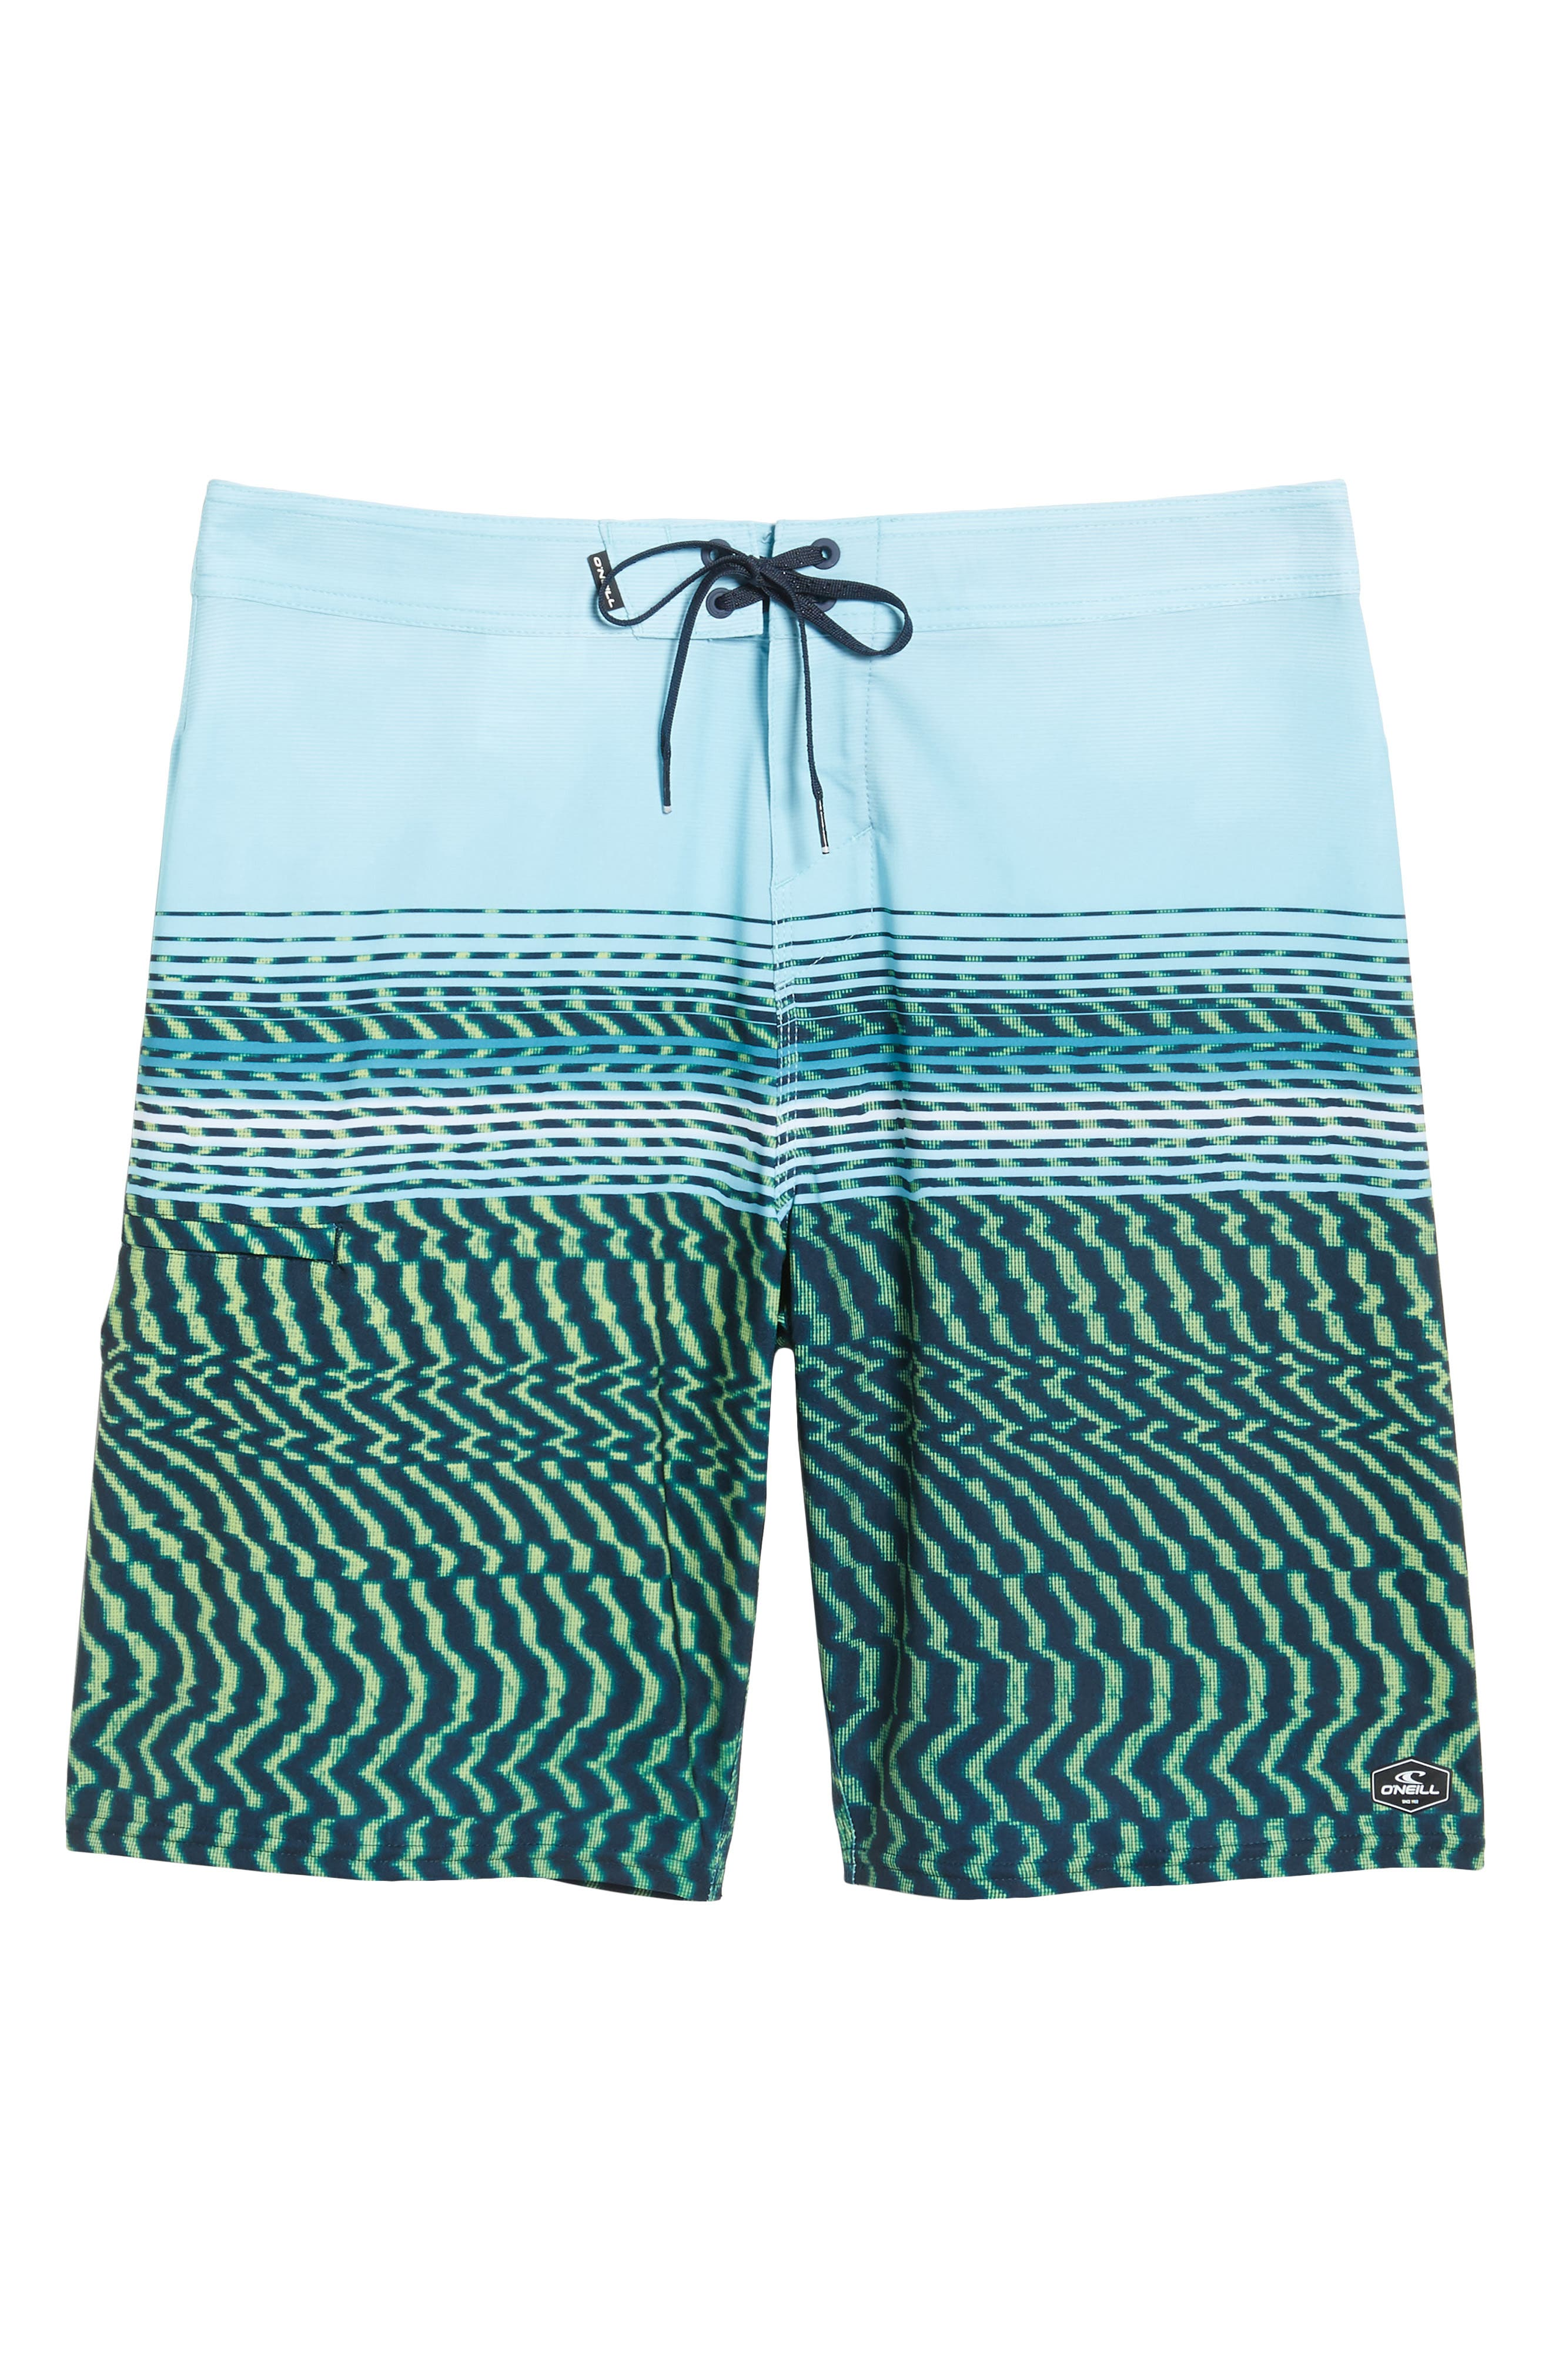 Hyperfreak Wavelength Board Shorts,                             Alternate thumbnail 6, color,                             Lime